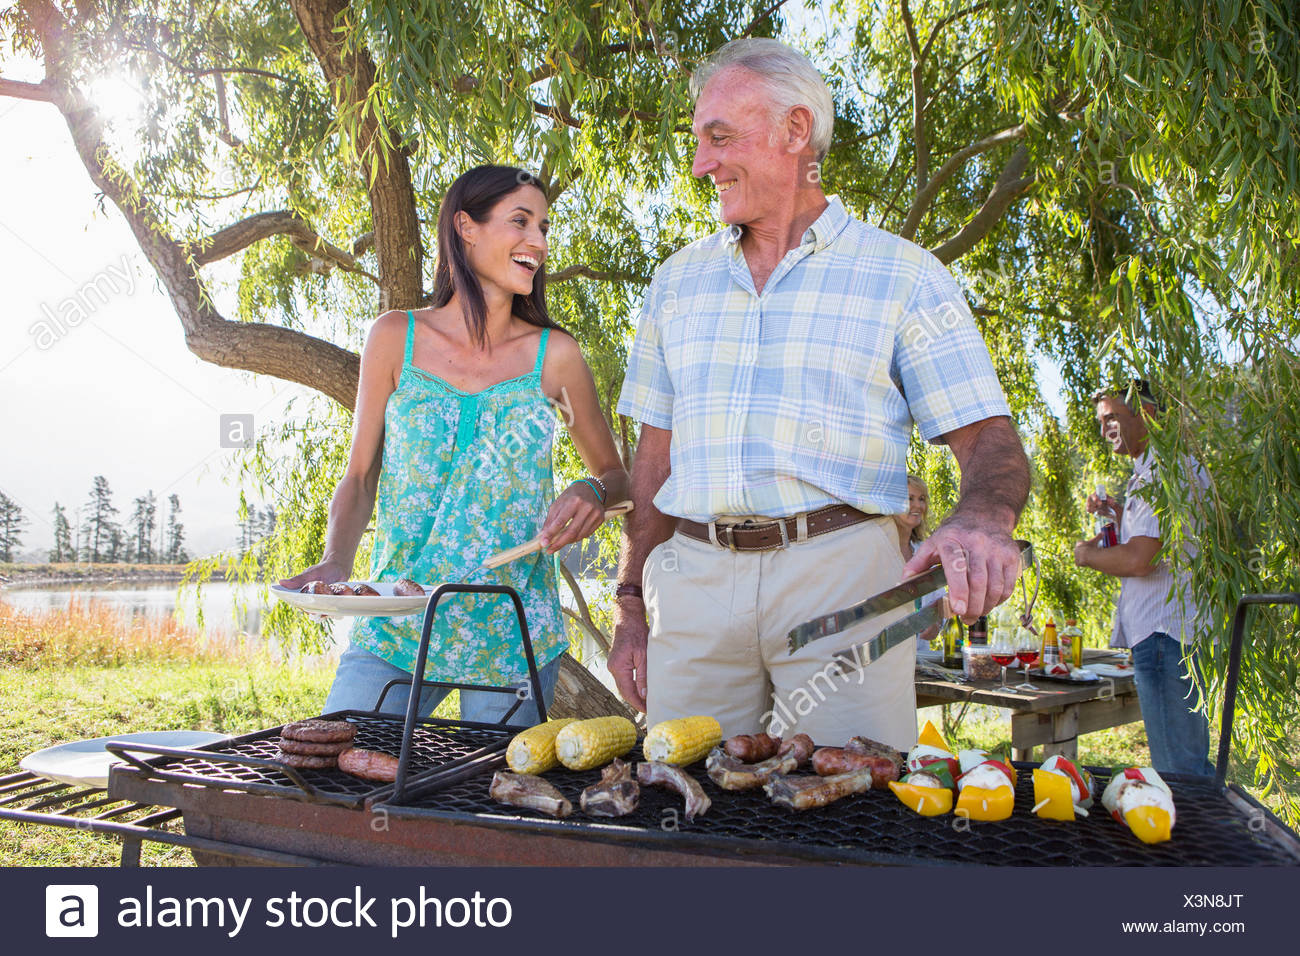 Adult Family Group Cooking Barbeque In Countryside - Stock Image